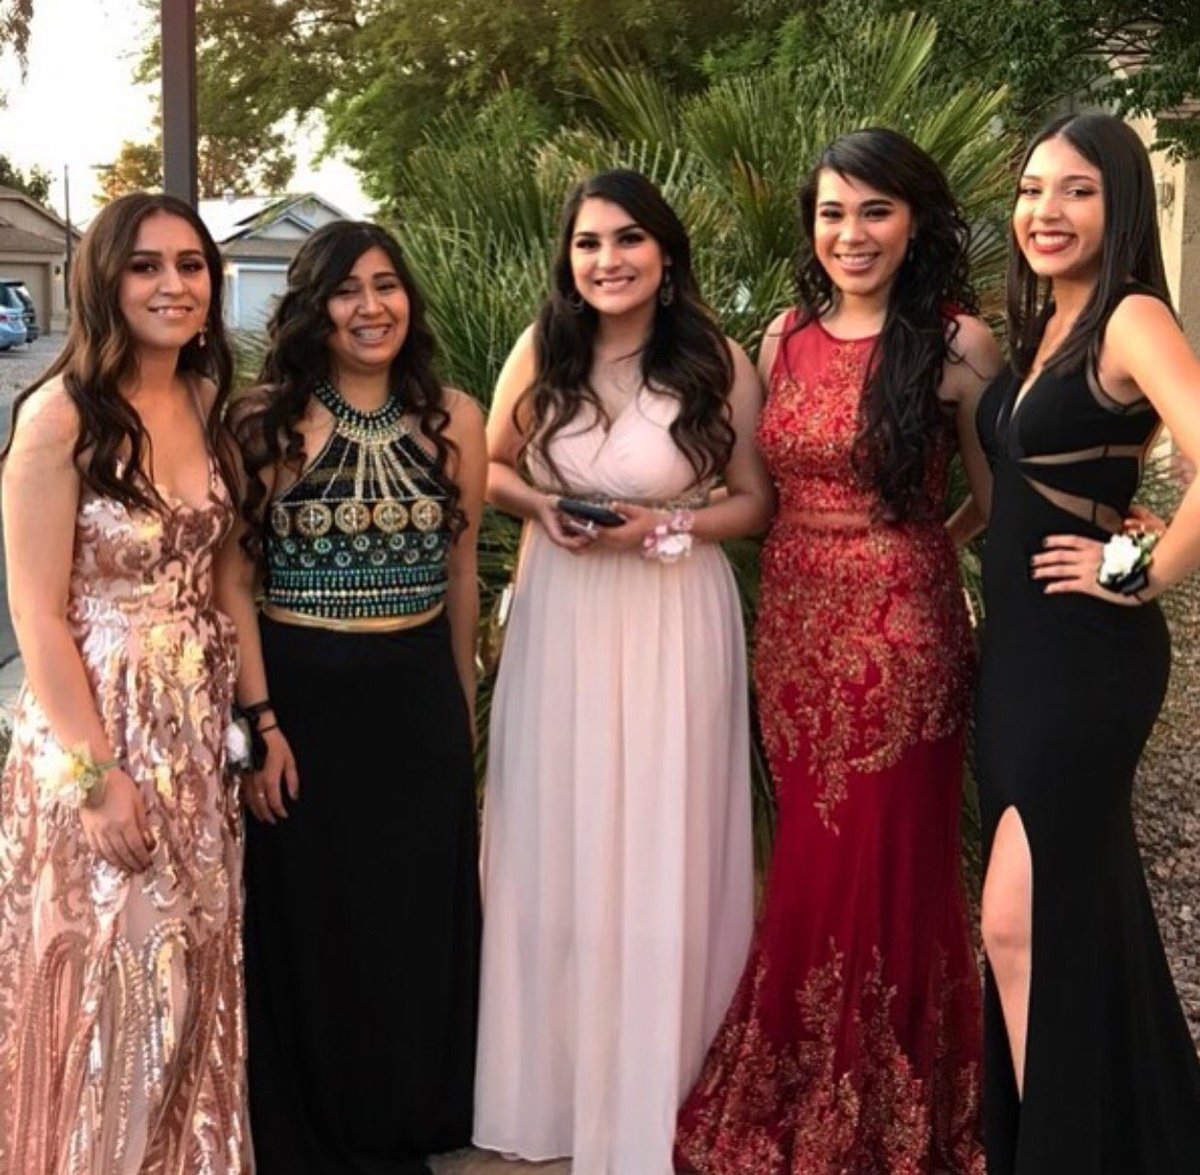 the music at prom was bad but that's okay because i spent that time with my friends whom i love very much ❤